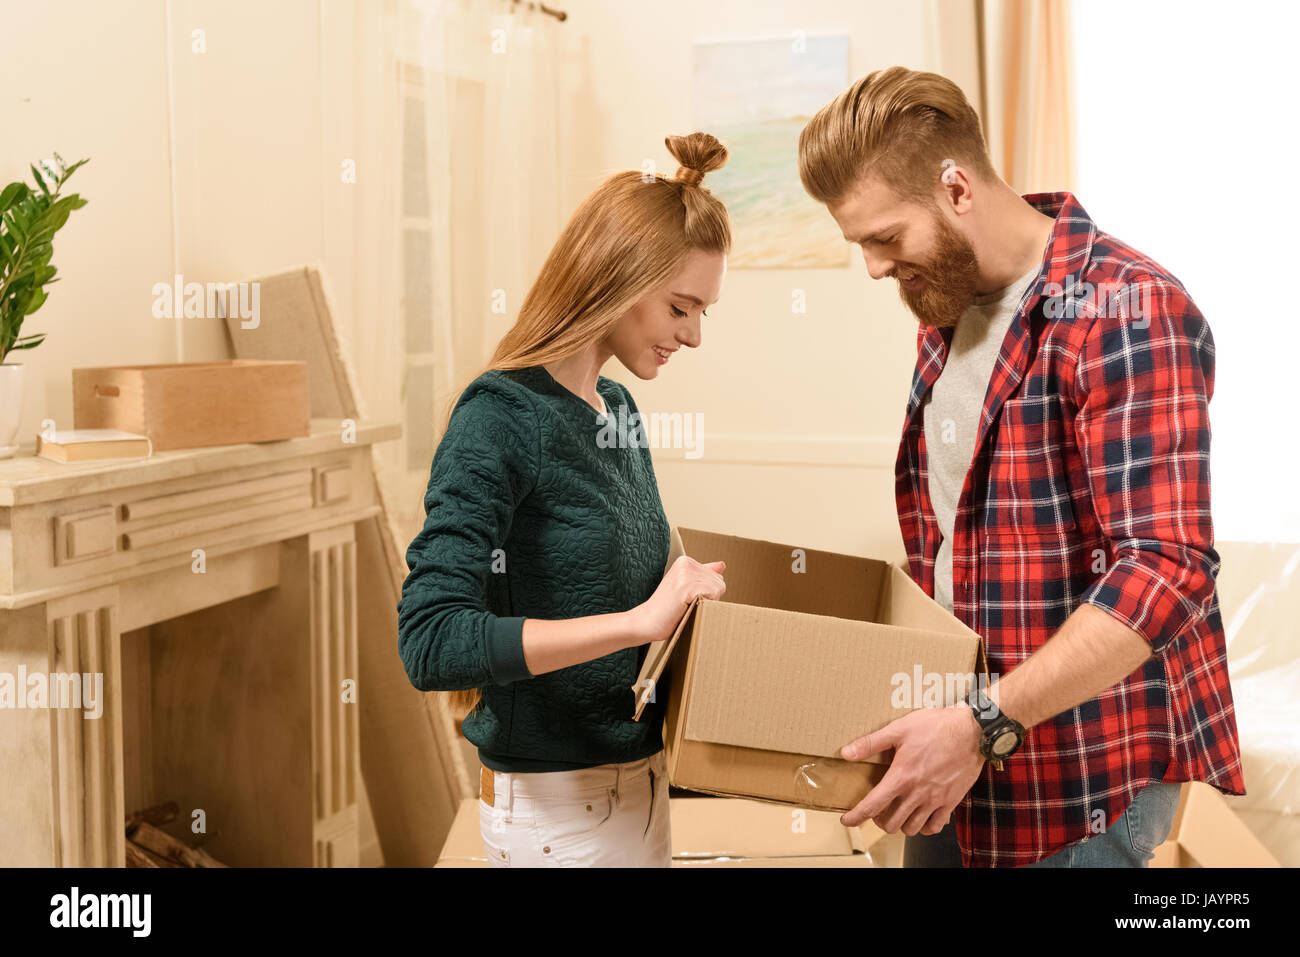 side view of young smiling couple looking into cardboard box at new home - Stock Image